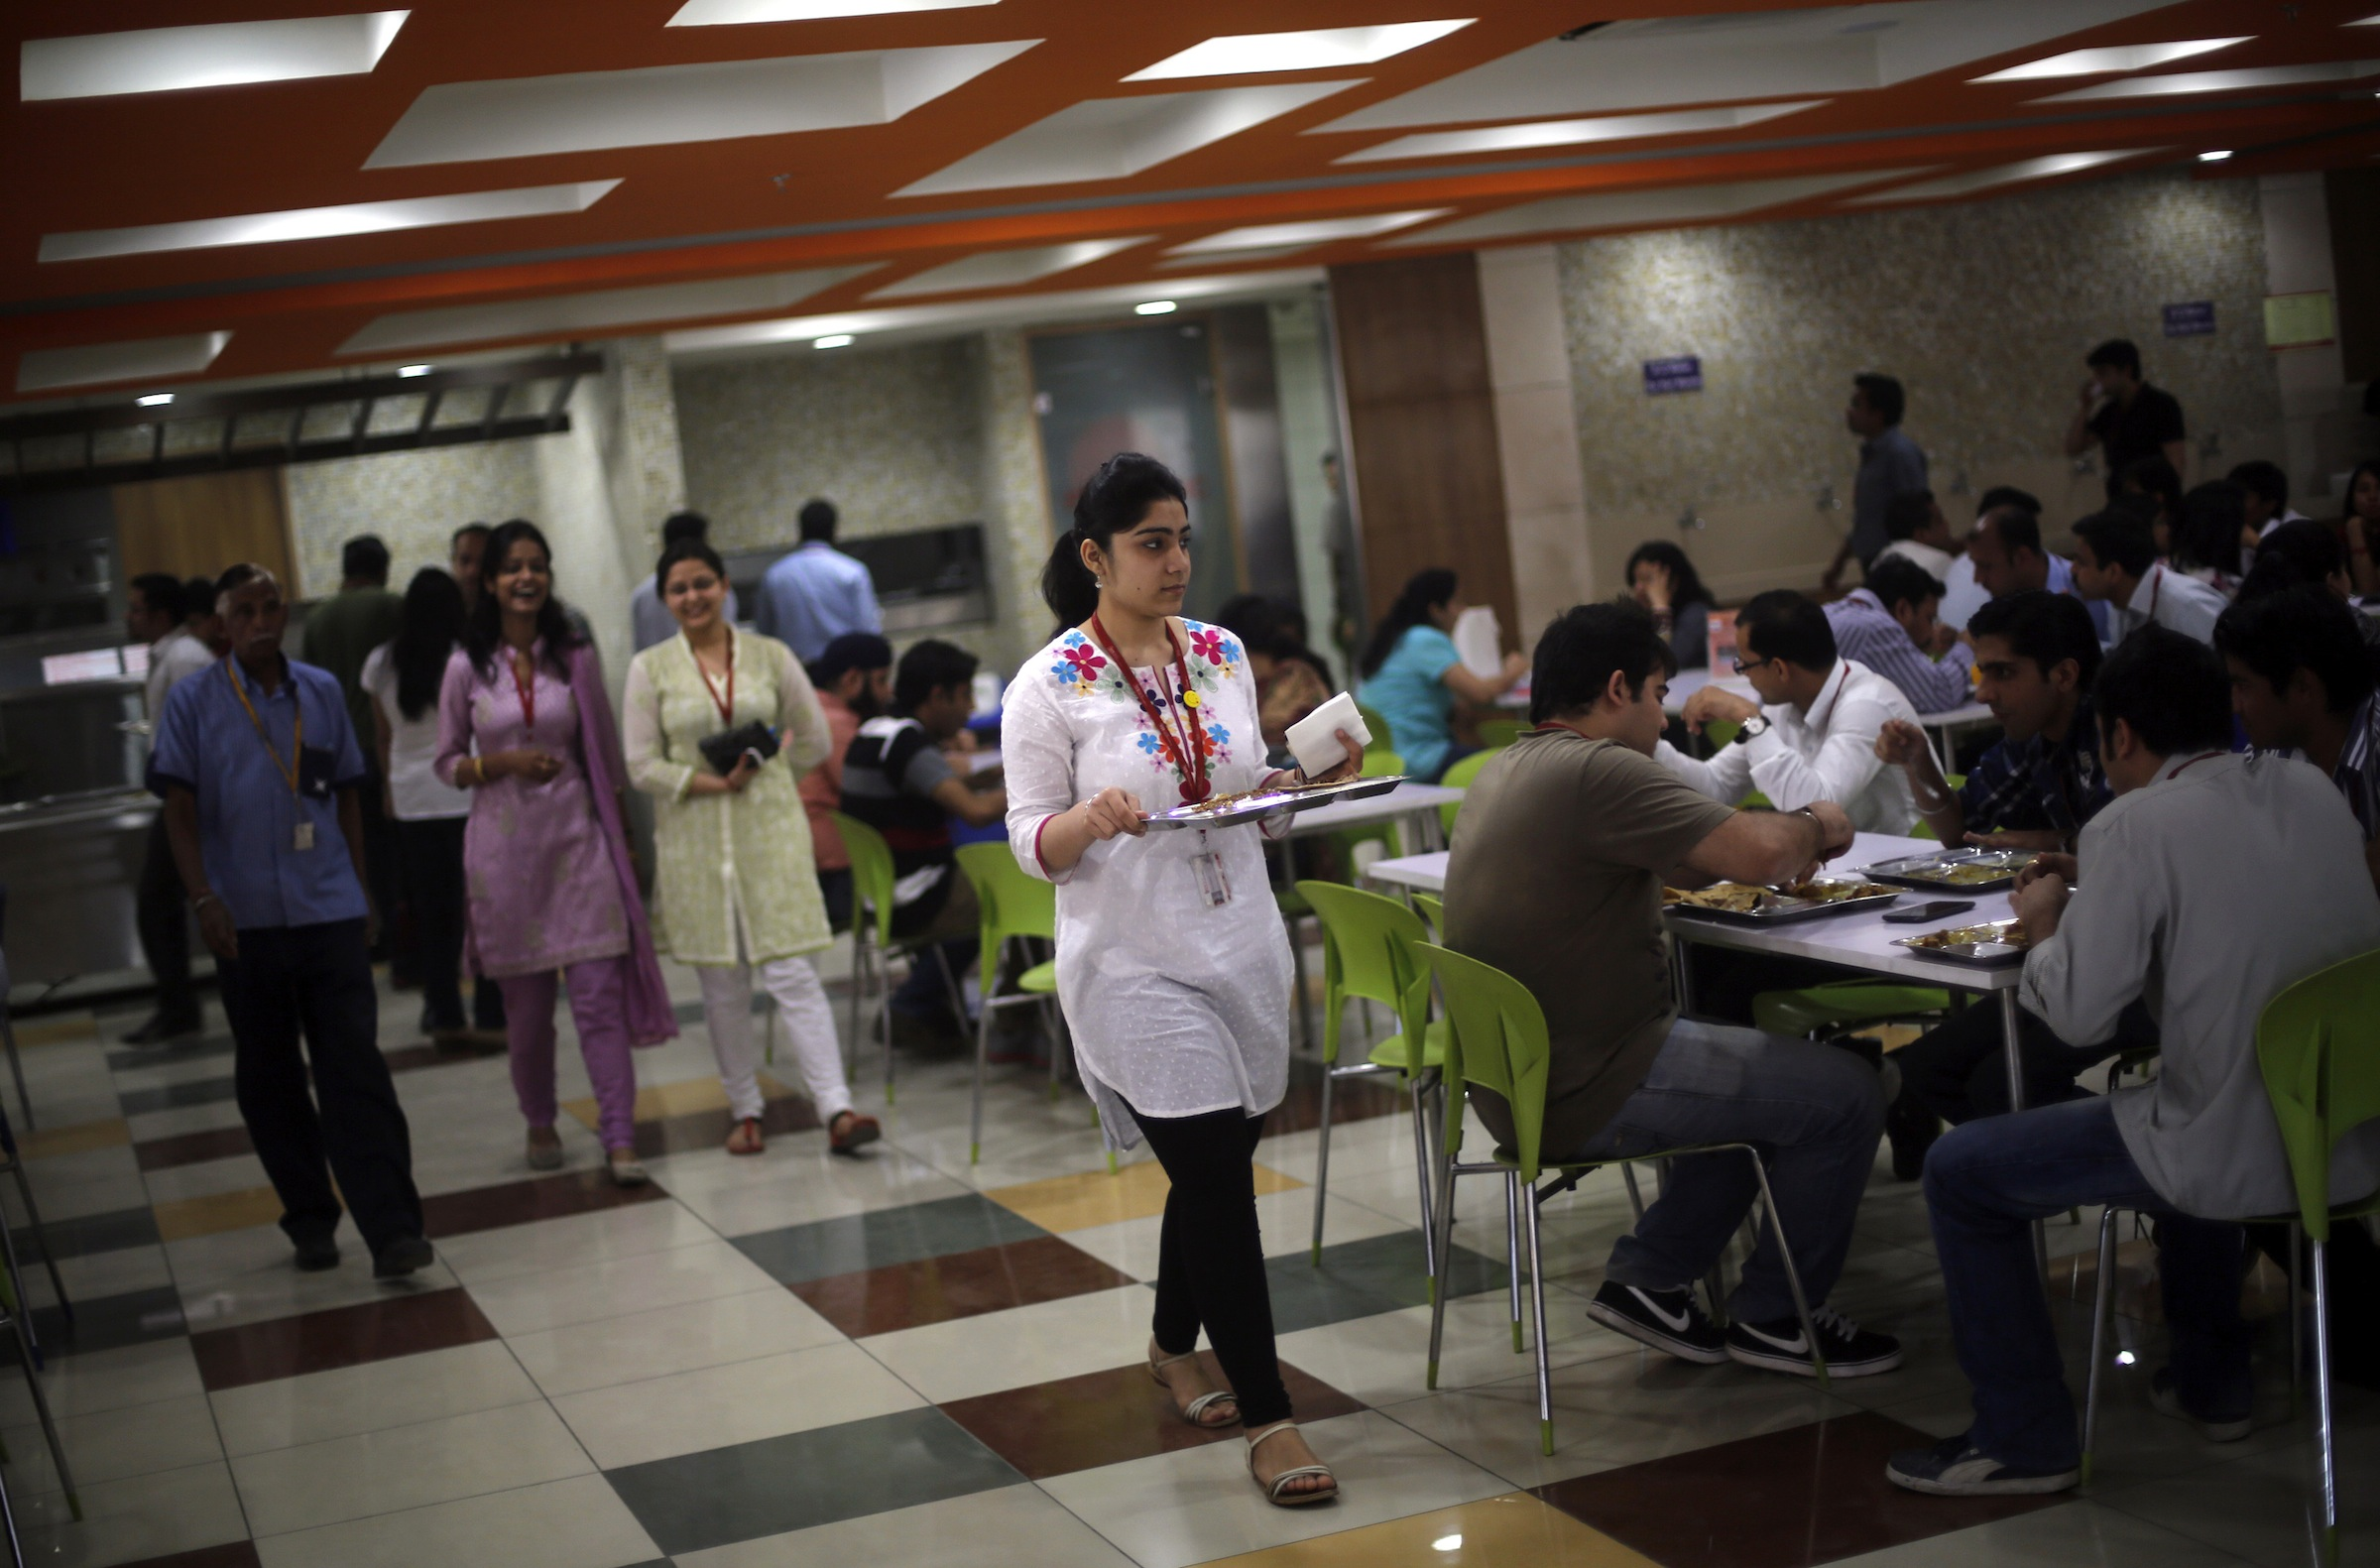 """An employee carries her lunch at a cafeteria inside Tech Mahindra office building in Noida on the outskirts of New Delhi March 18, 2013. India's IT outsourcers are promoting """"mini CEOs"""" capable of running businesses on their own, while trimming down on the hordes of entry-level computer coders they normally hire as they try to squeeze more profits out of their staff. To match Analysis INDIA-TECH/STAFFING  Picture taken March 18, 2013.   REUTERS/Adnan Abidi (INDIA - Tags: BUSINESS SCIENCE TECHNOLOGY EMPLOYMENT) - RTXXW8O"""